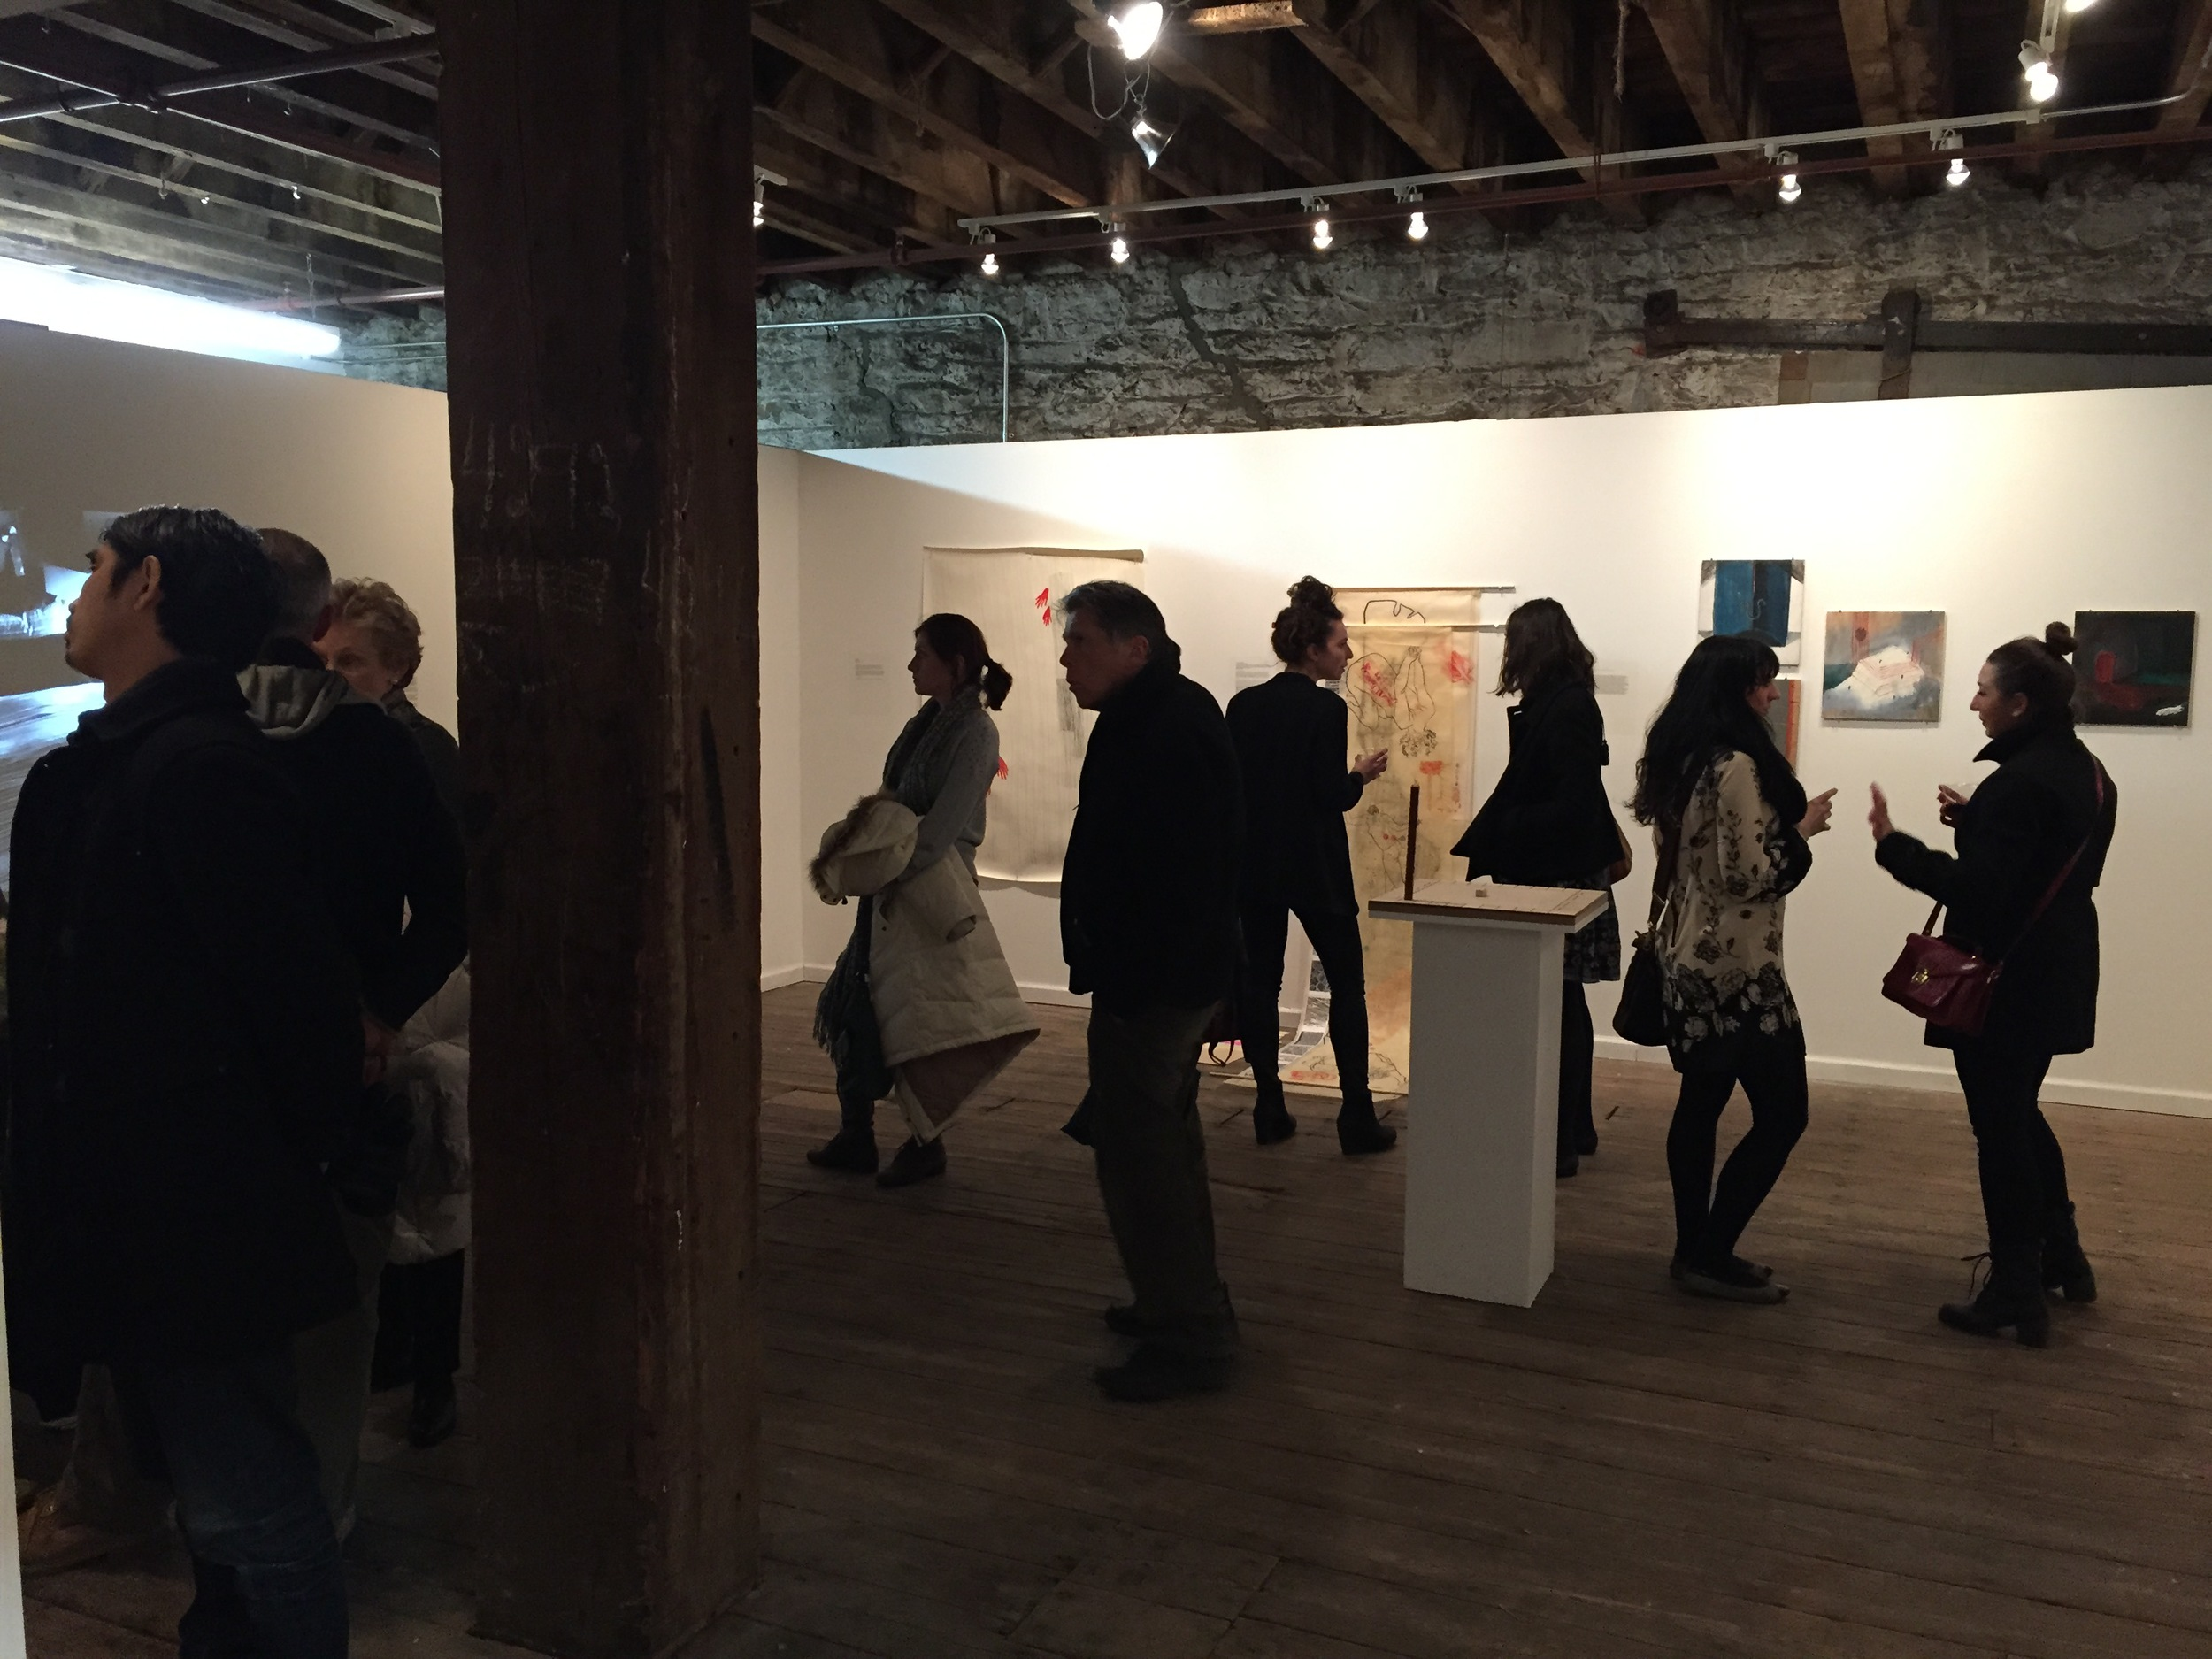 Engaging Artists Opening night in the Hot Wood Arts gallery (3-28-15)